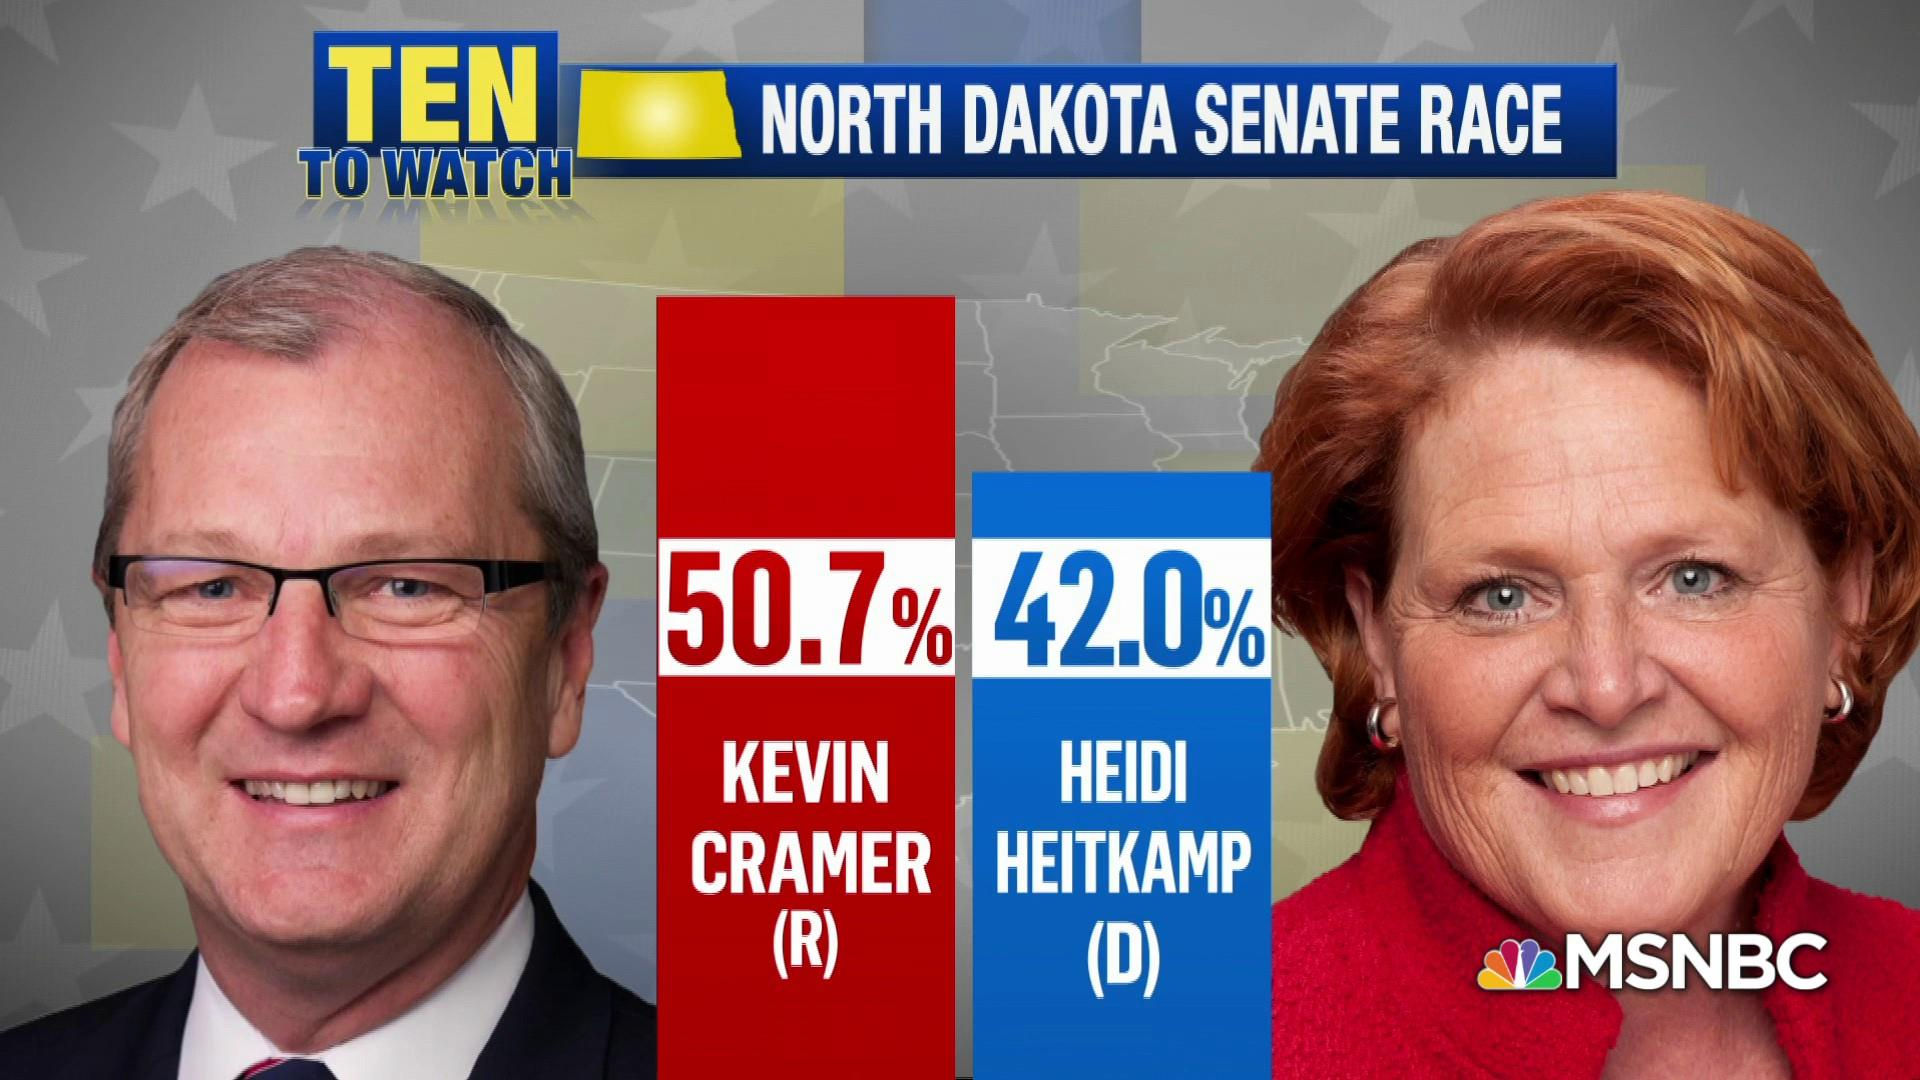 Midterms Ten to Watch: Heidi Heitkamp and the North Dakota Senate Race